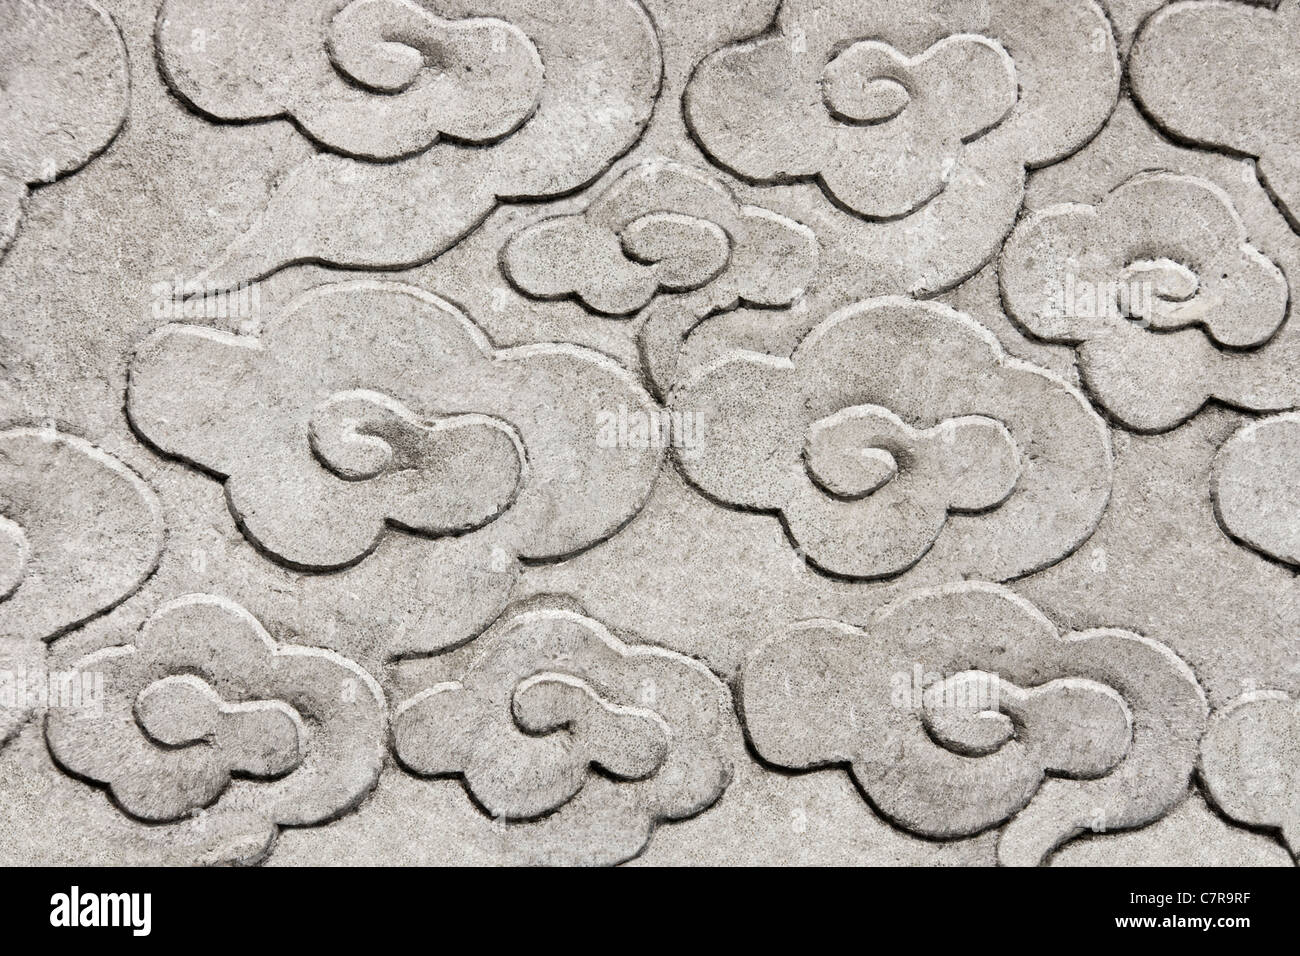 Stone carving of cloud pattern, Shanghai, China - Stock Image